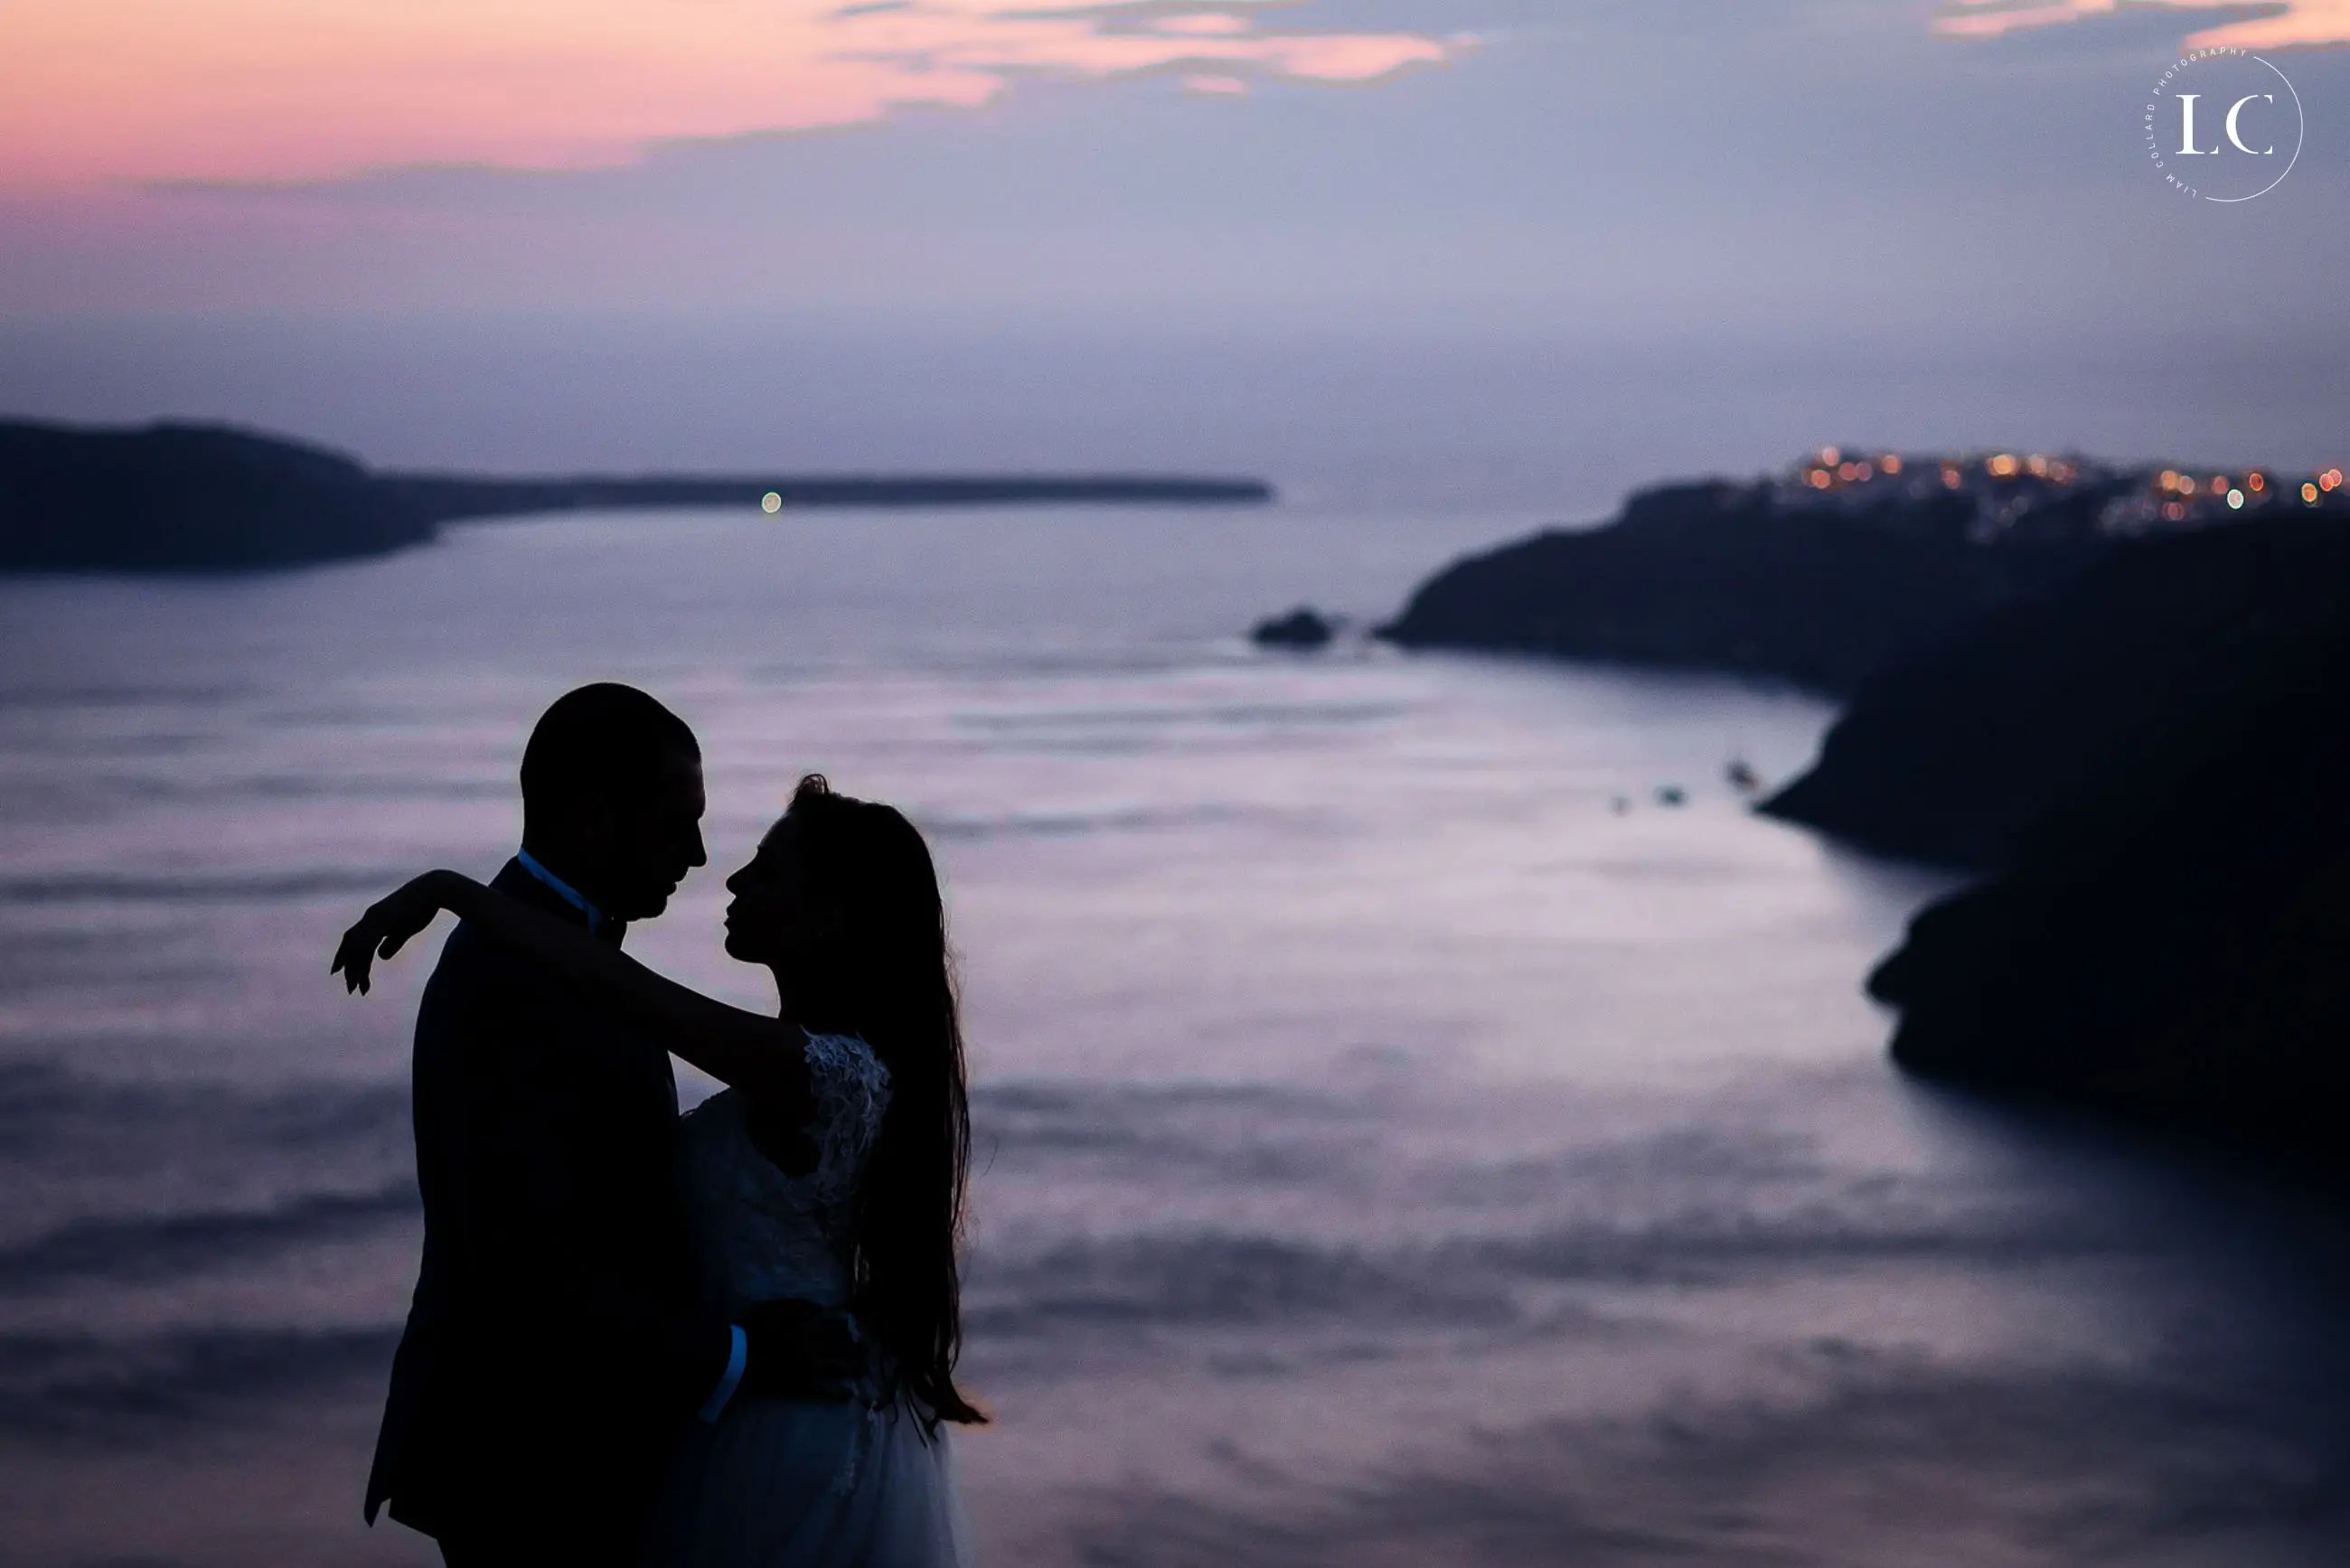 Silhouette of bride and groom at dusk